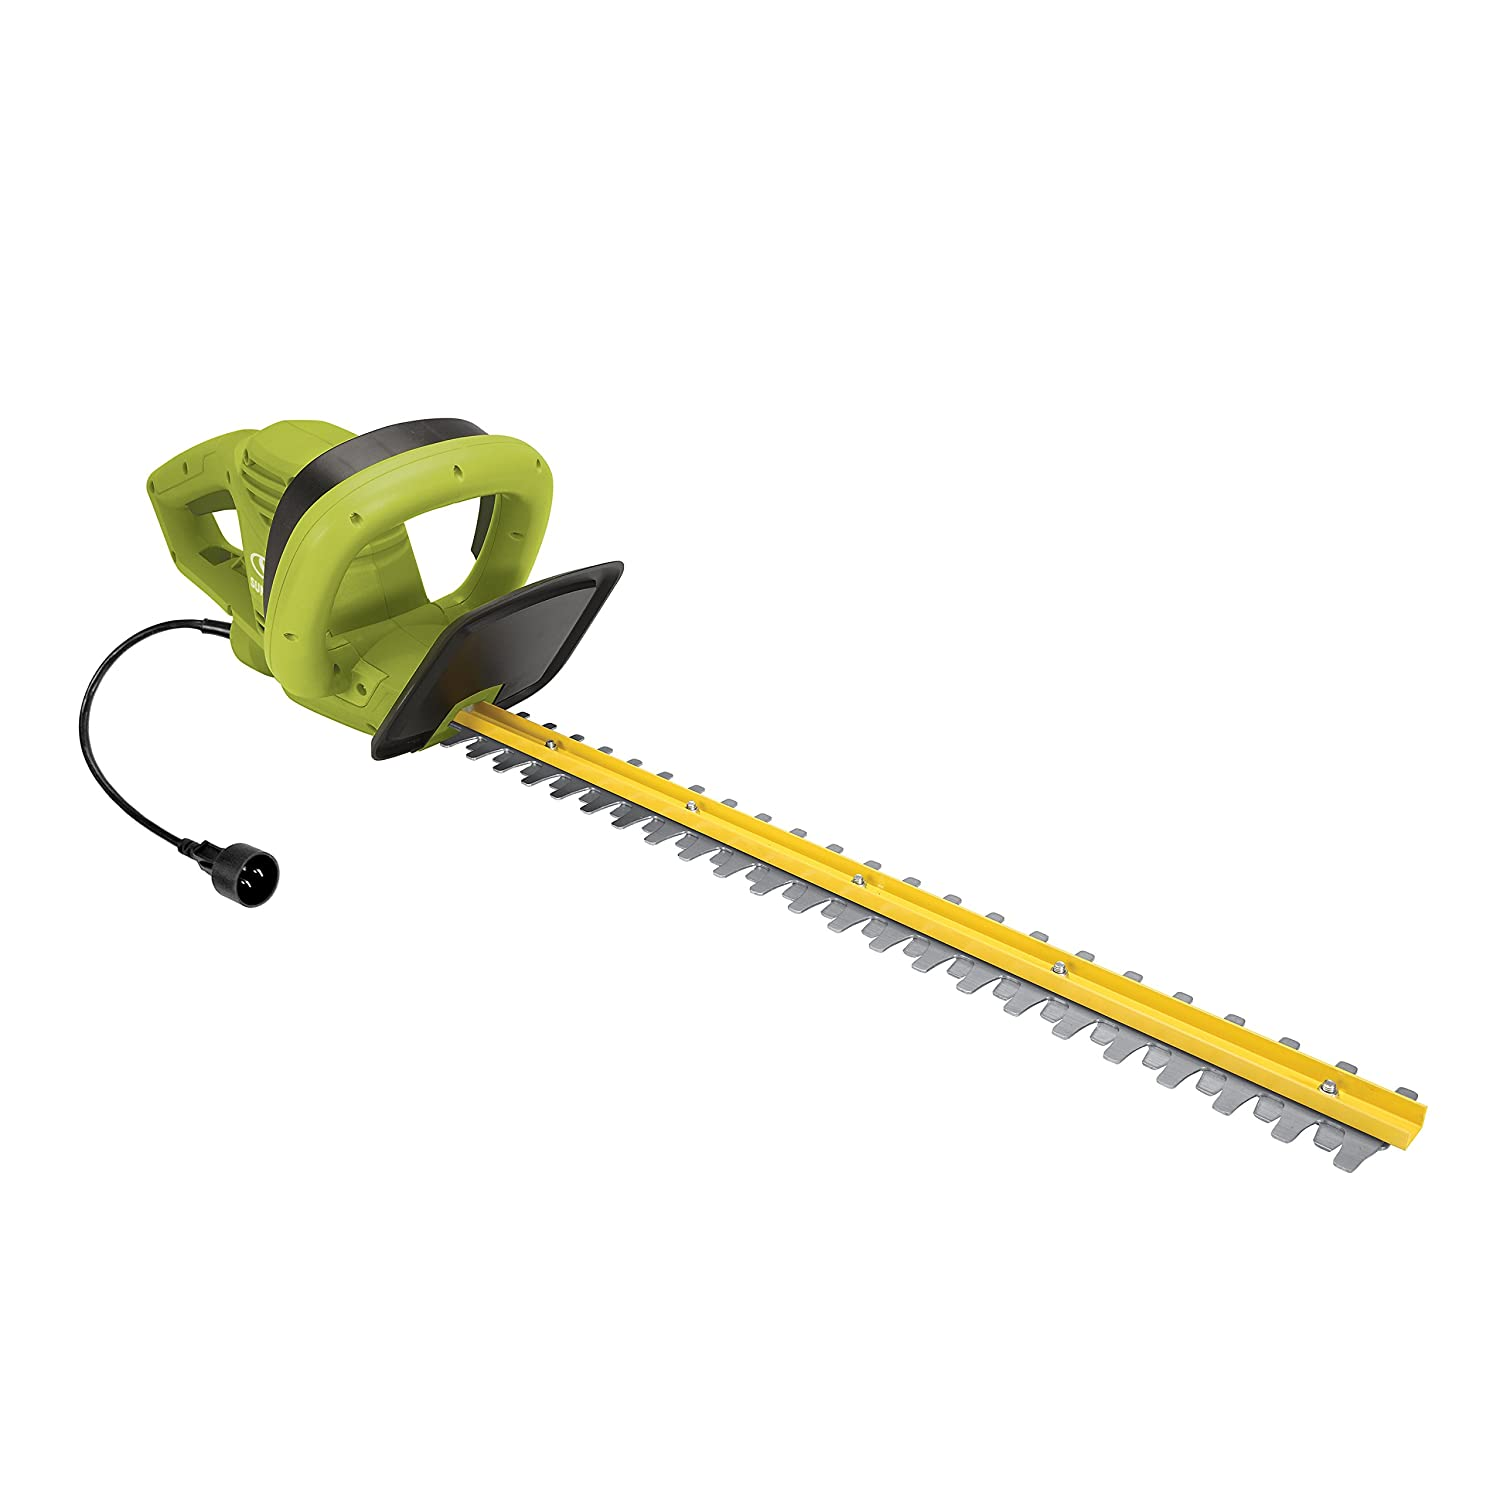 hedge trimmers patio lawn garden